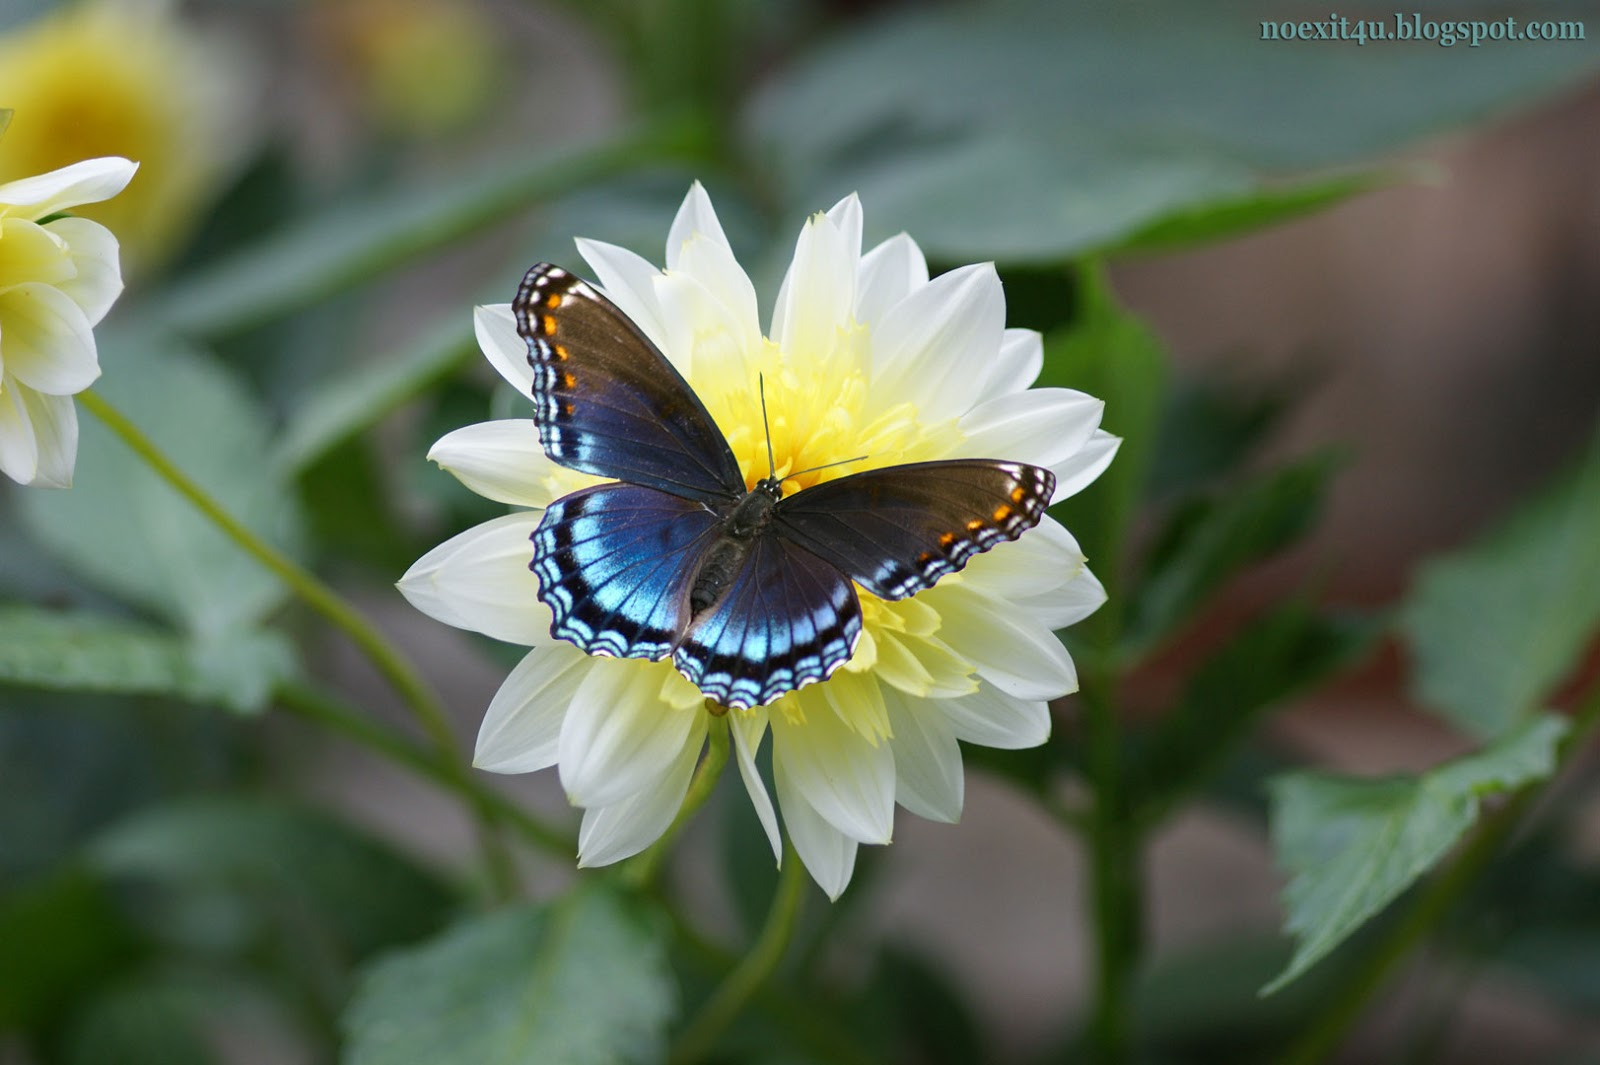 butterfly on a flower wallpaper (hd) ~ noexit4u